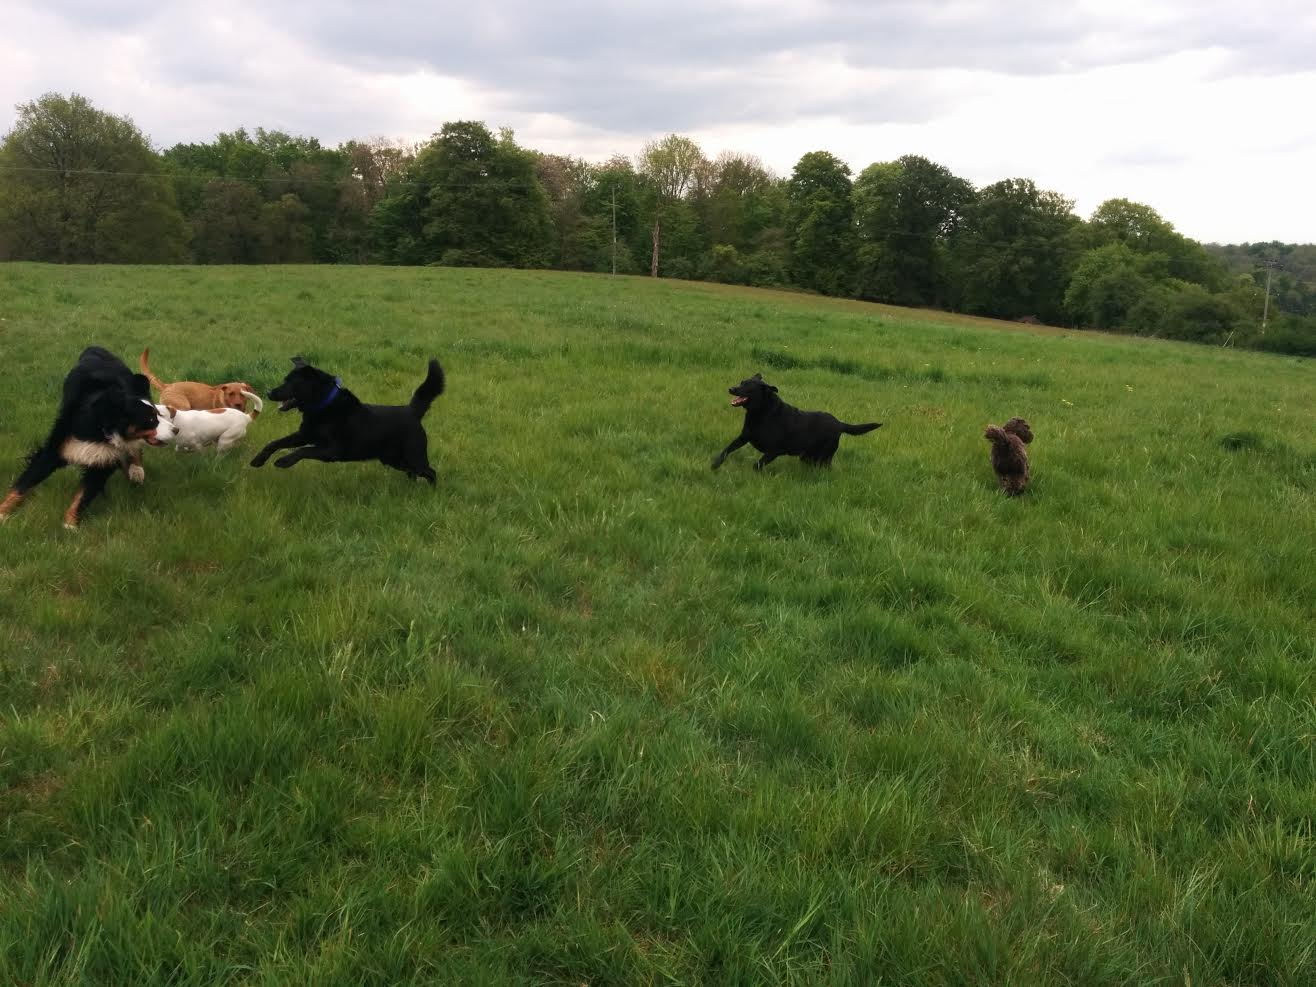 Big dogs playing